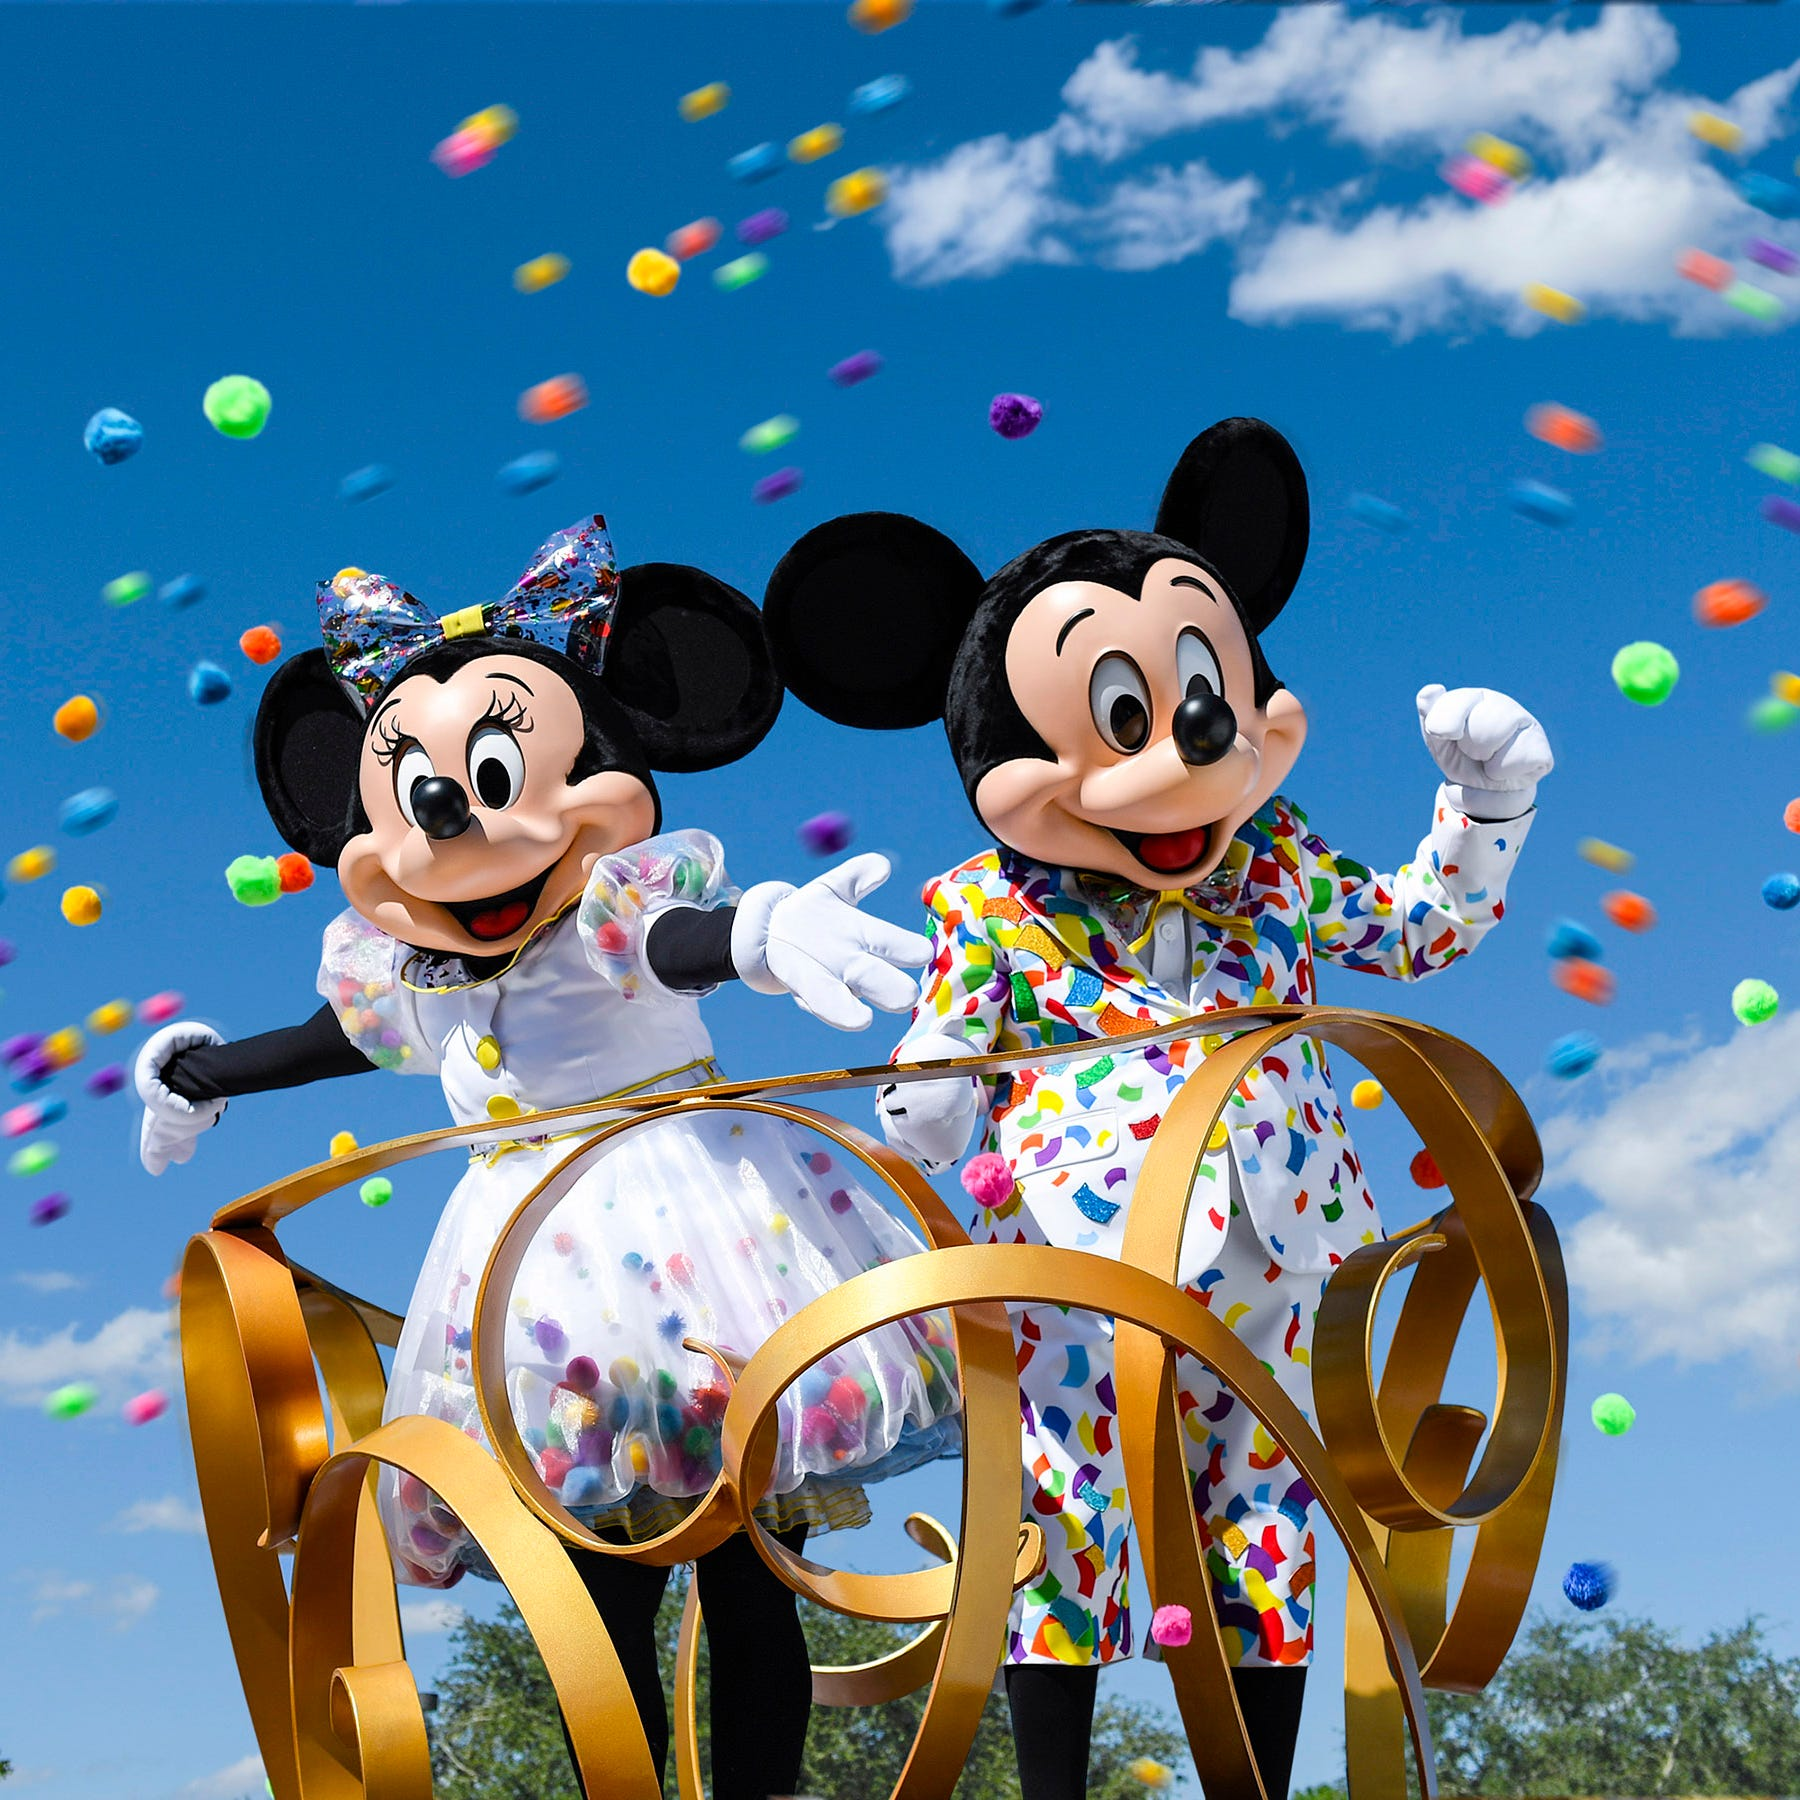 Disneyland's new stroller-size rules start May 1: Here's the latest update.